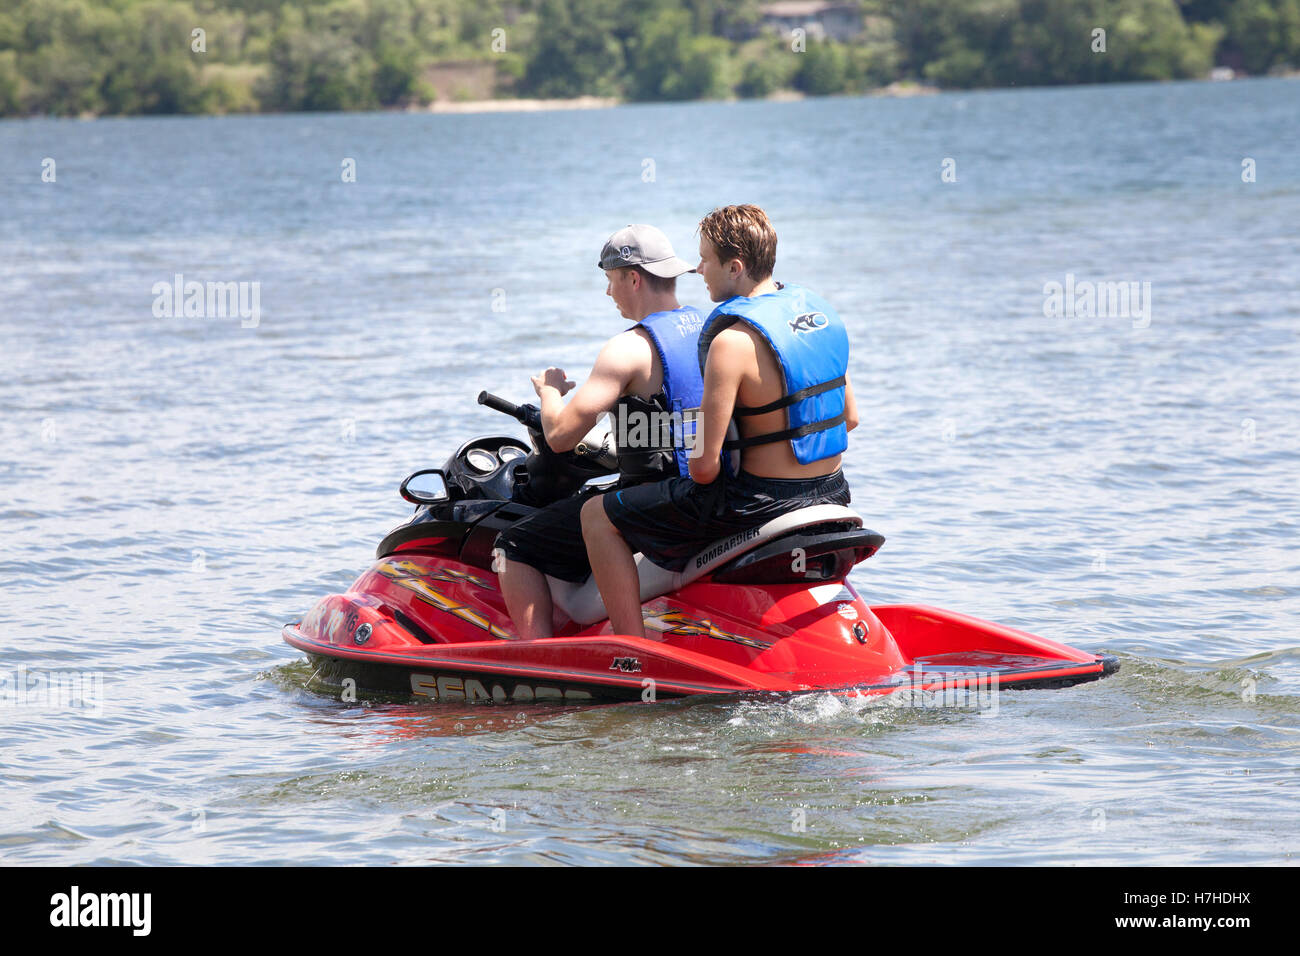 Two teenage boys wearing life vests driving Sea-Doo personal watercraft PWC on the lake. Clitherall Minnesota MN - Stock Image